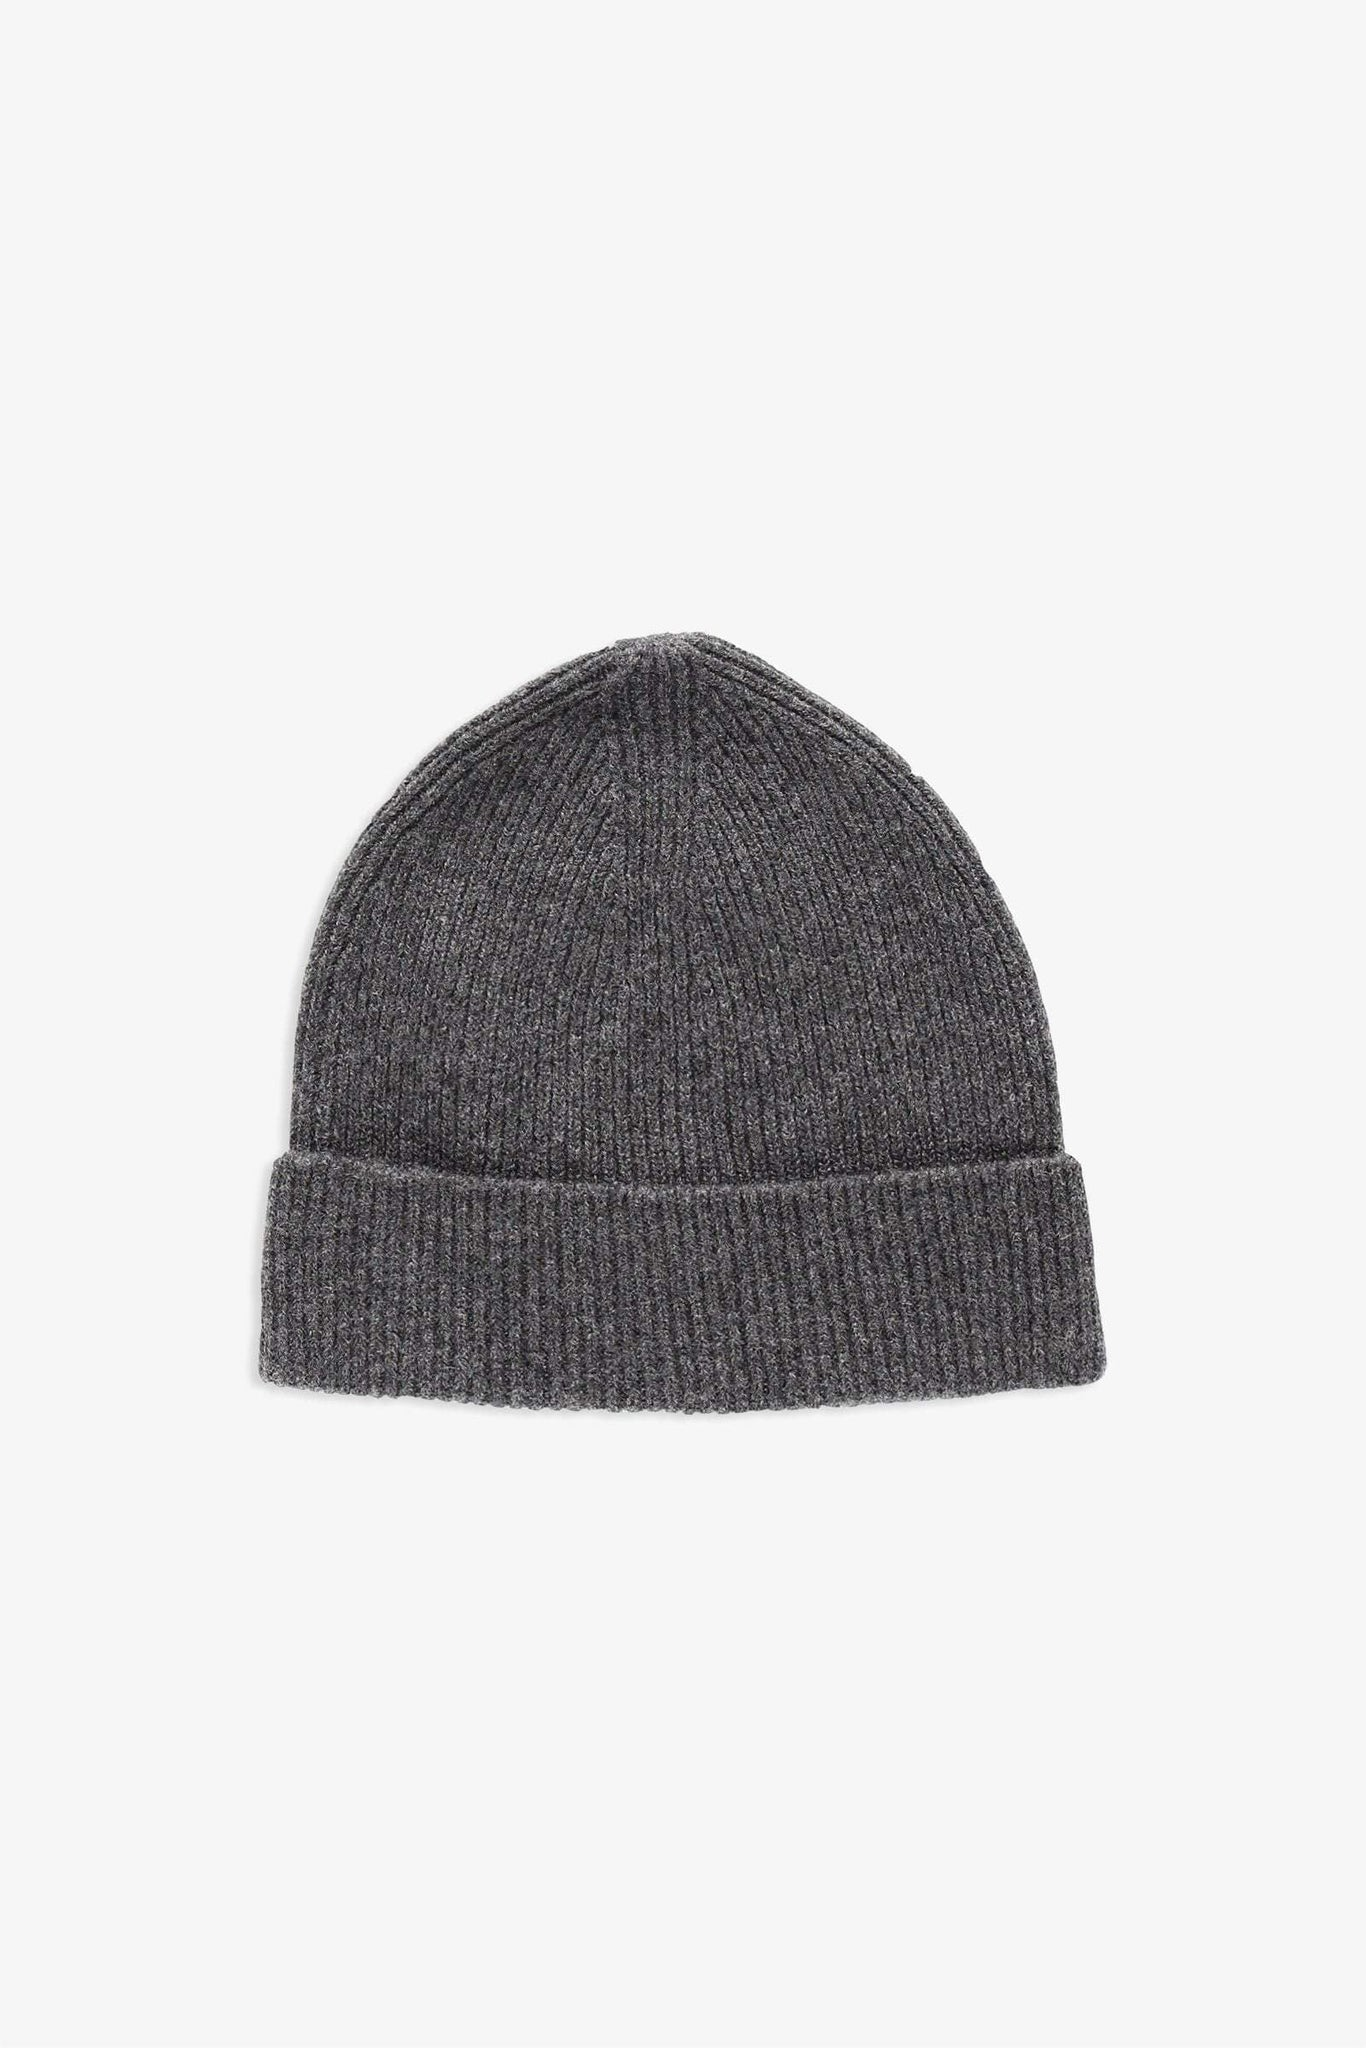 Reversible Beanie in wool - heather grey